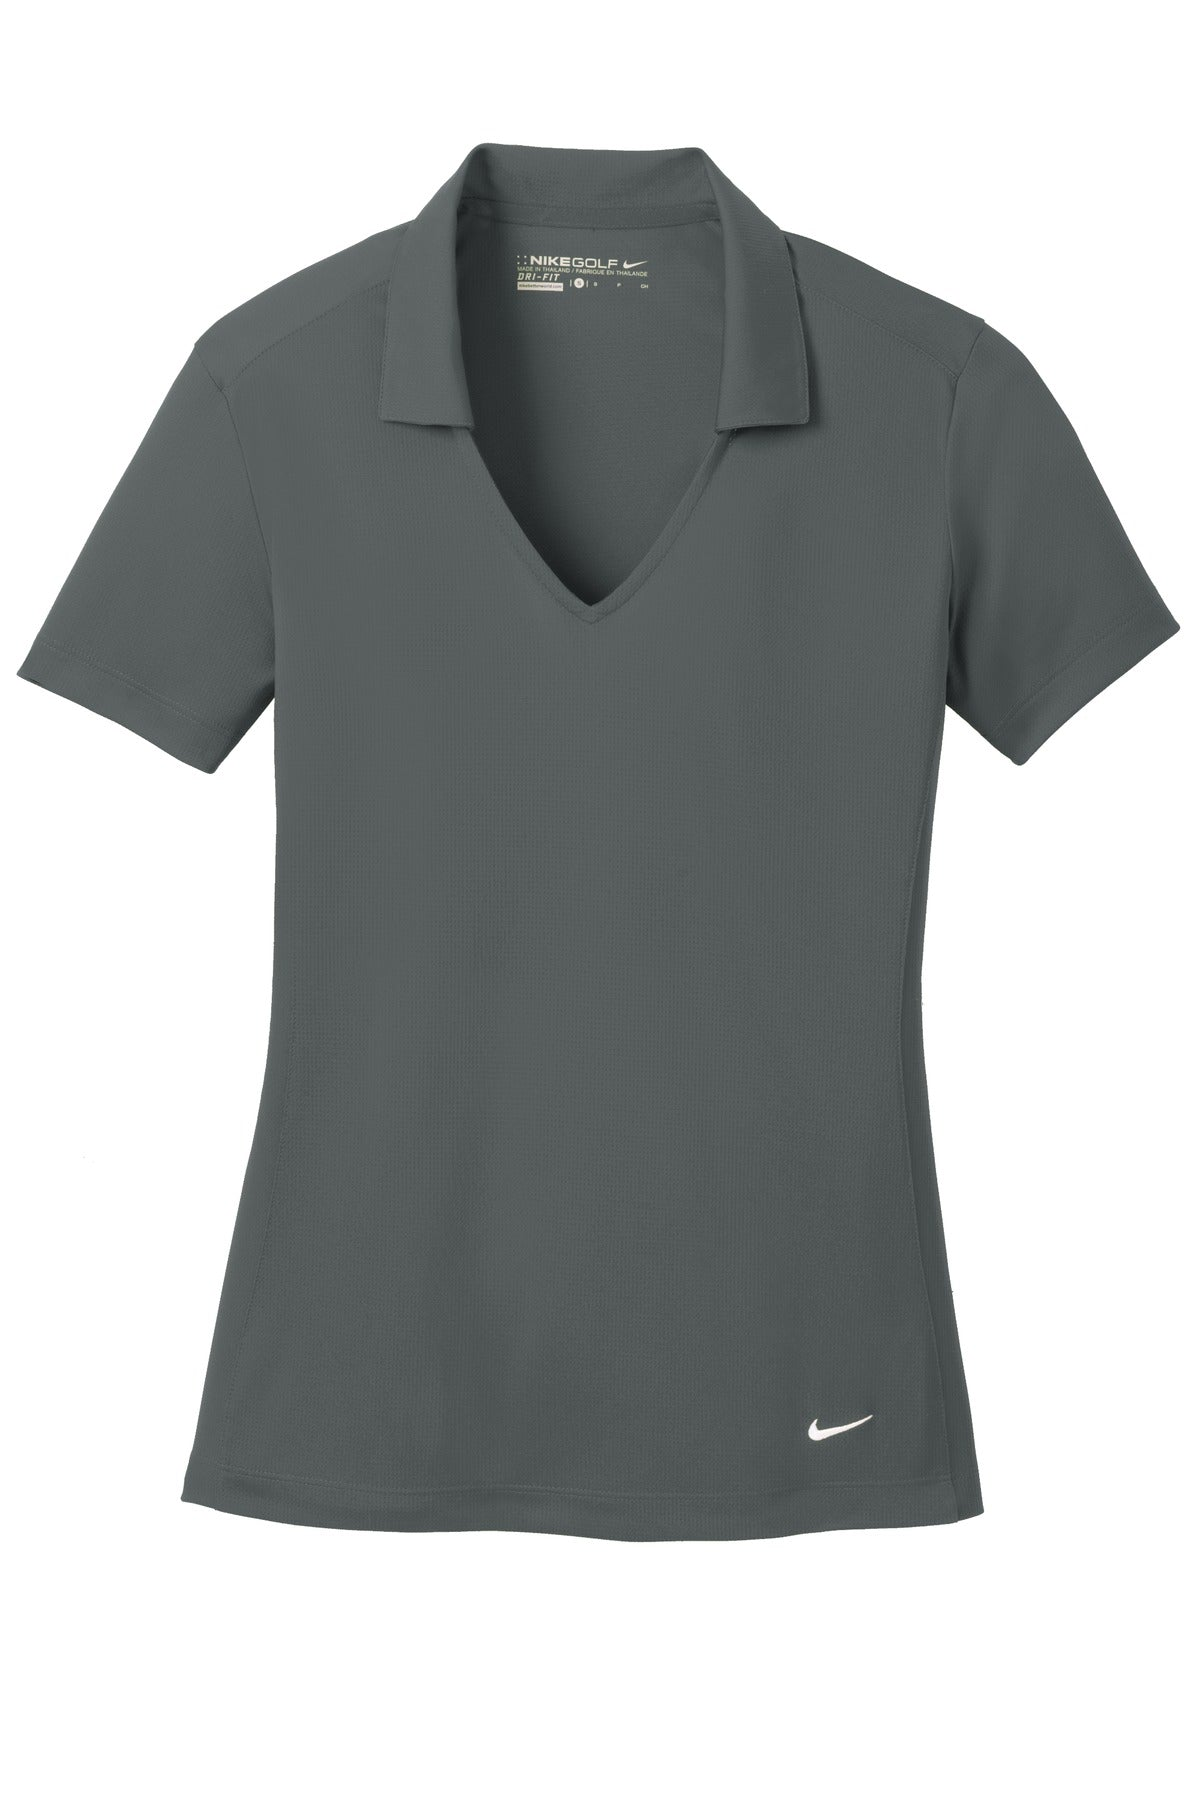 Anthracite Nike Ladies Dri-FIT Vertical Mesh Polo.